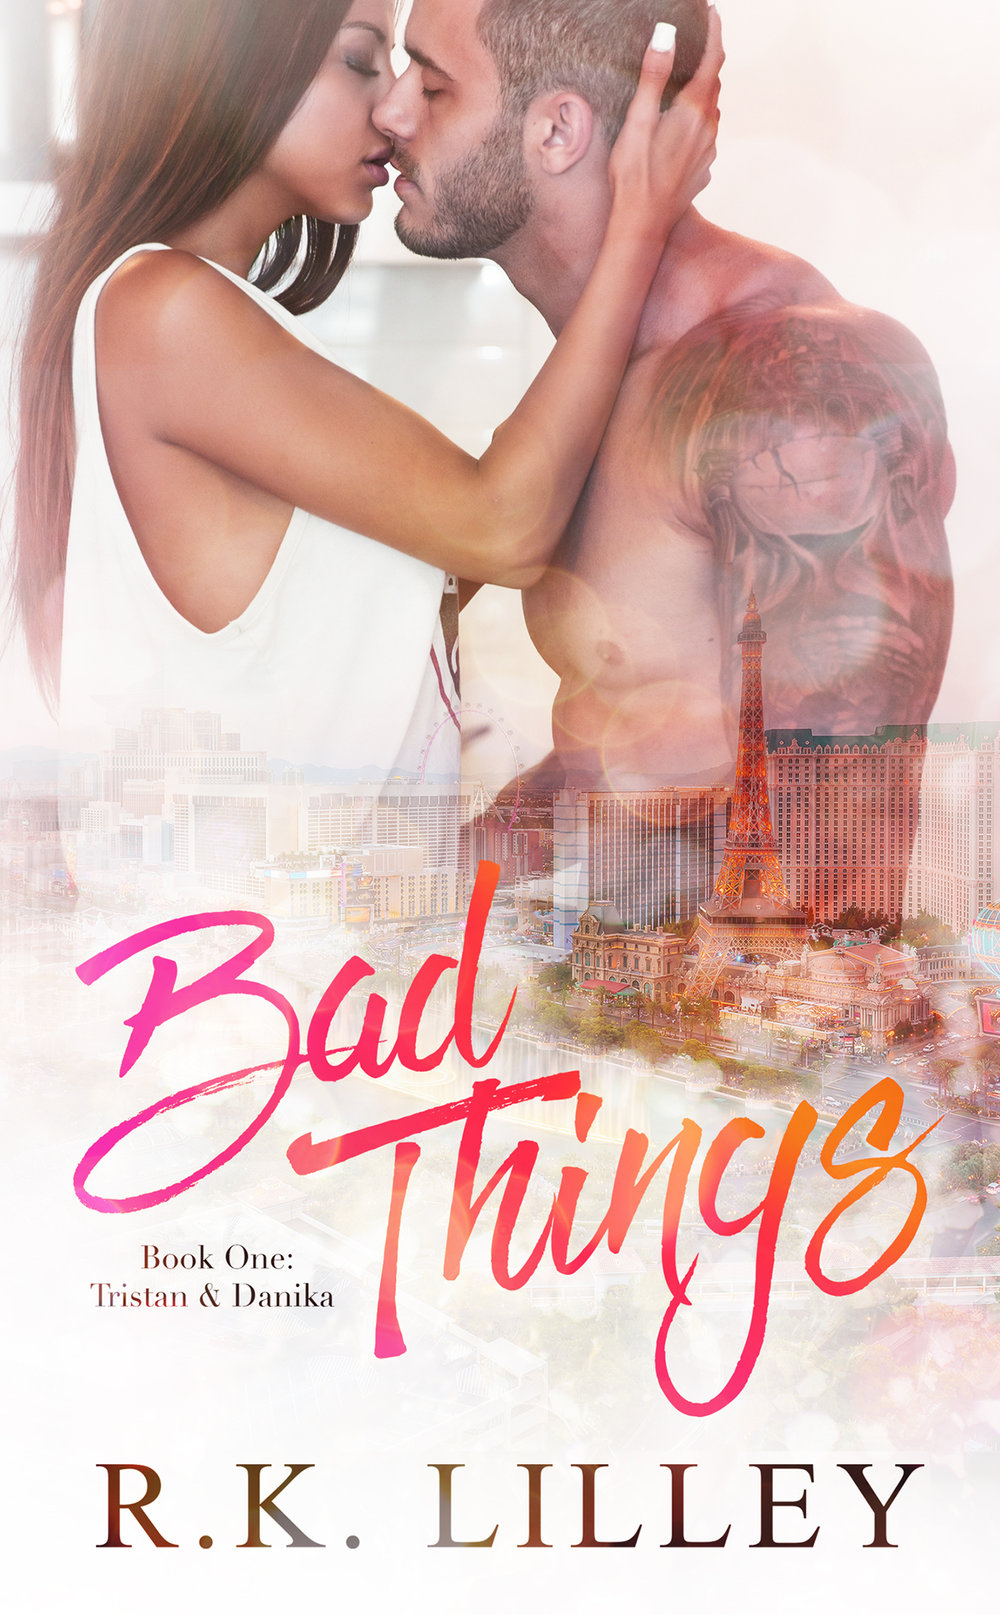 BadThings iBooks-1.jpg